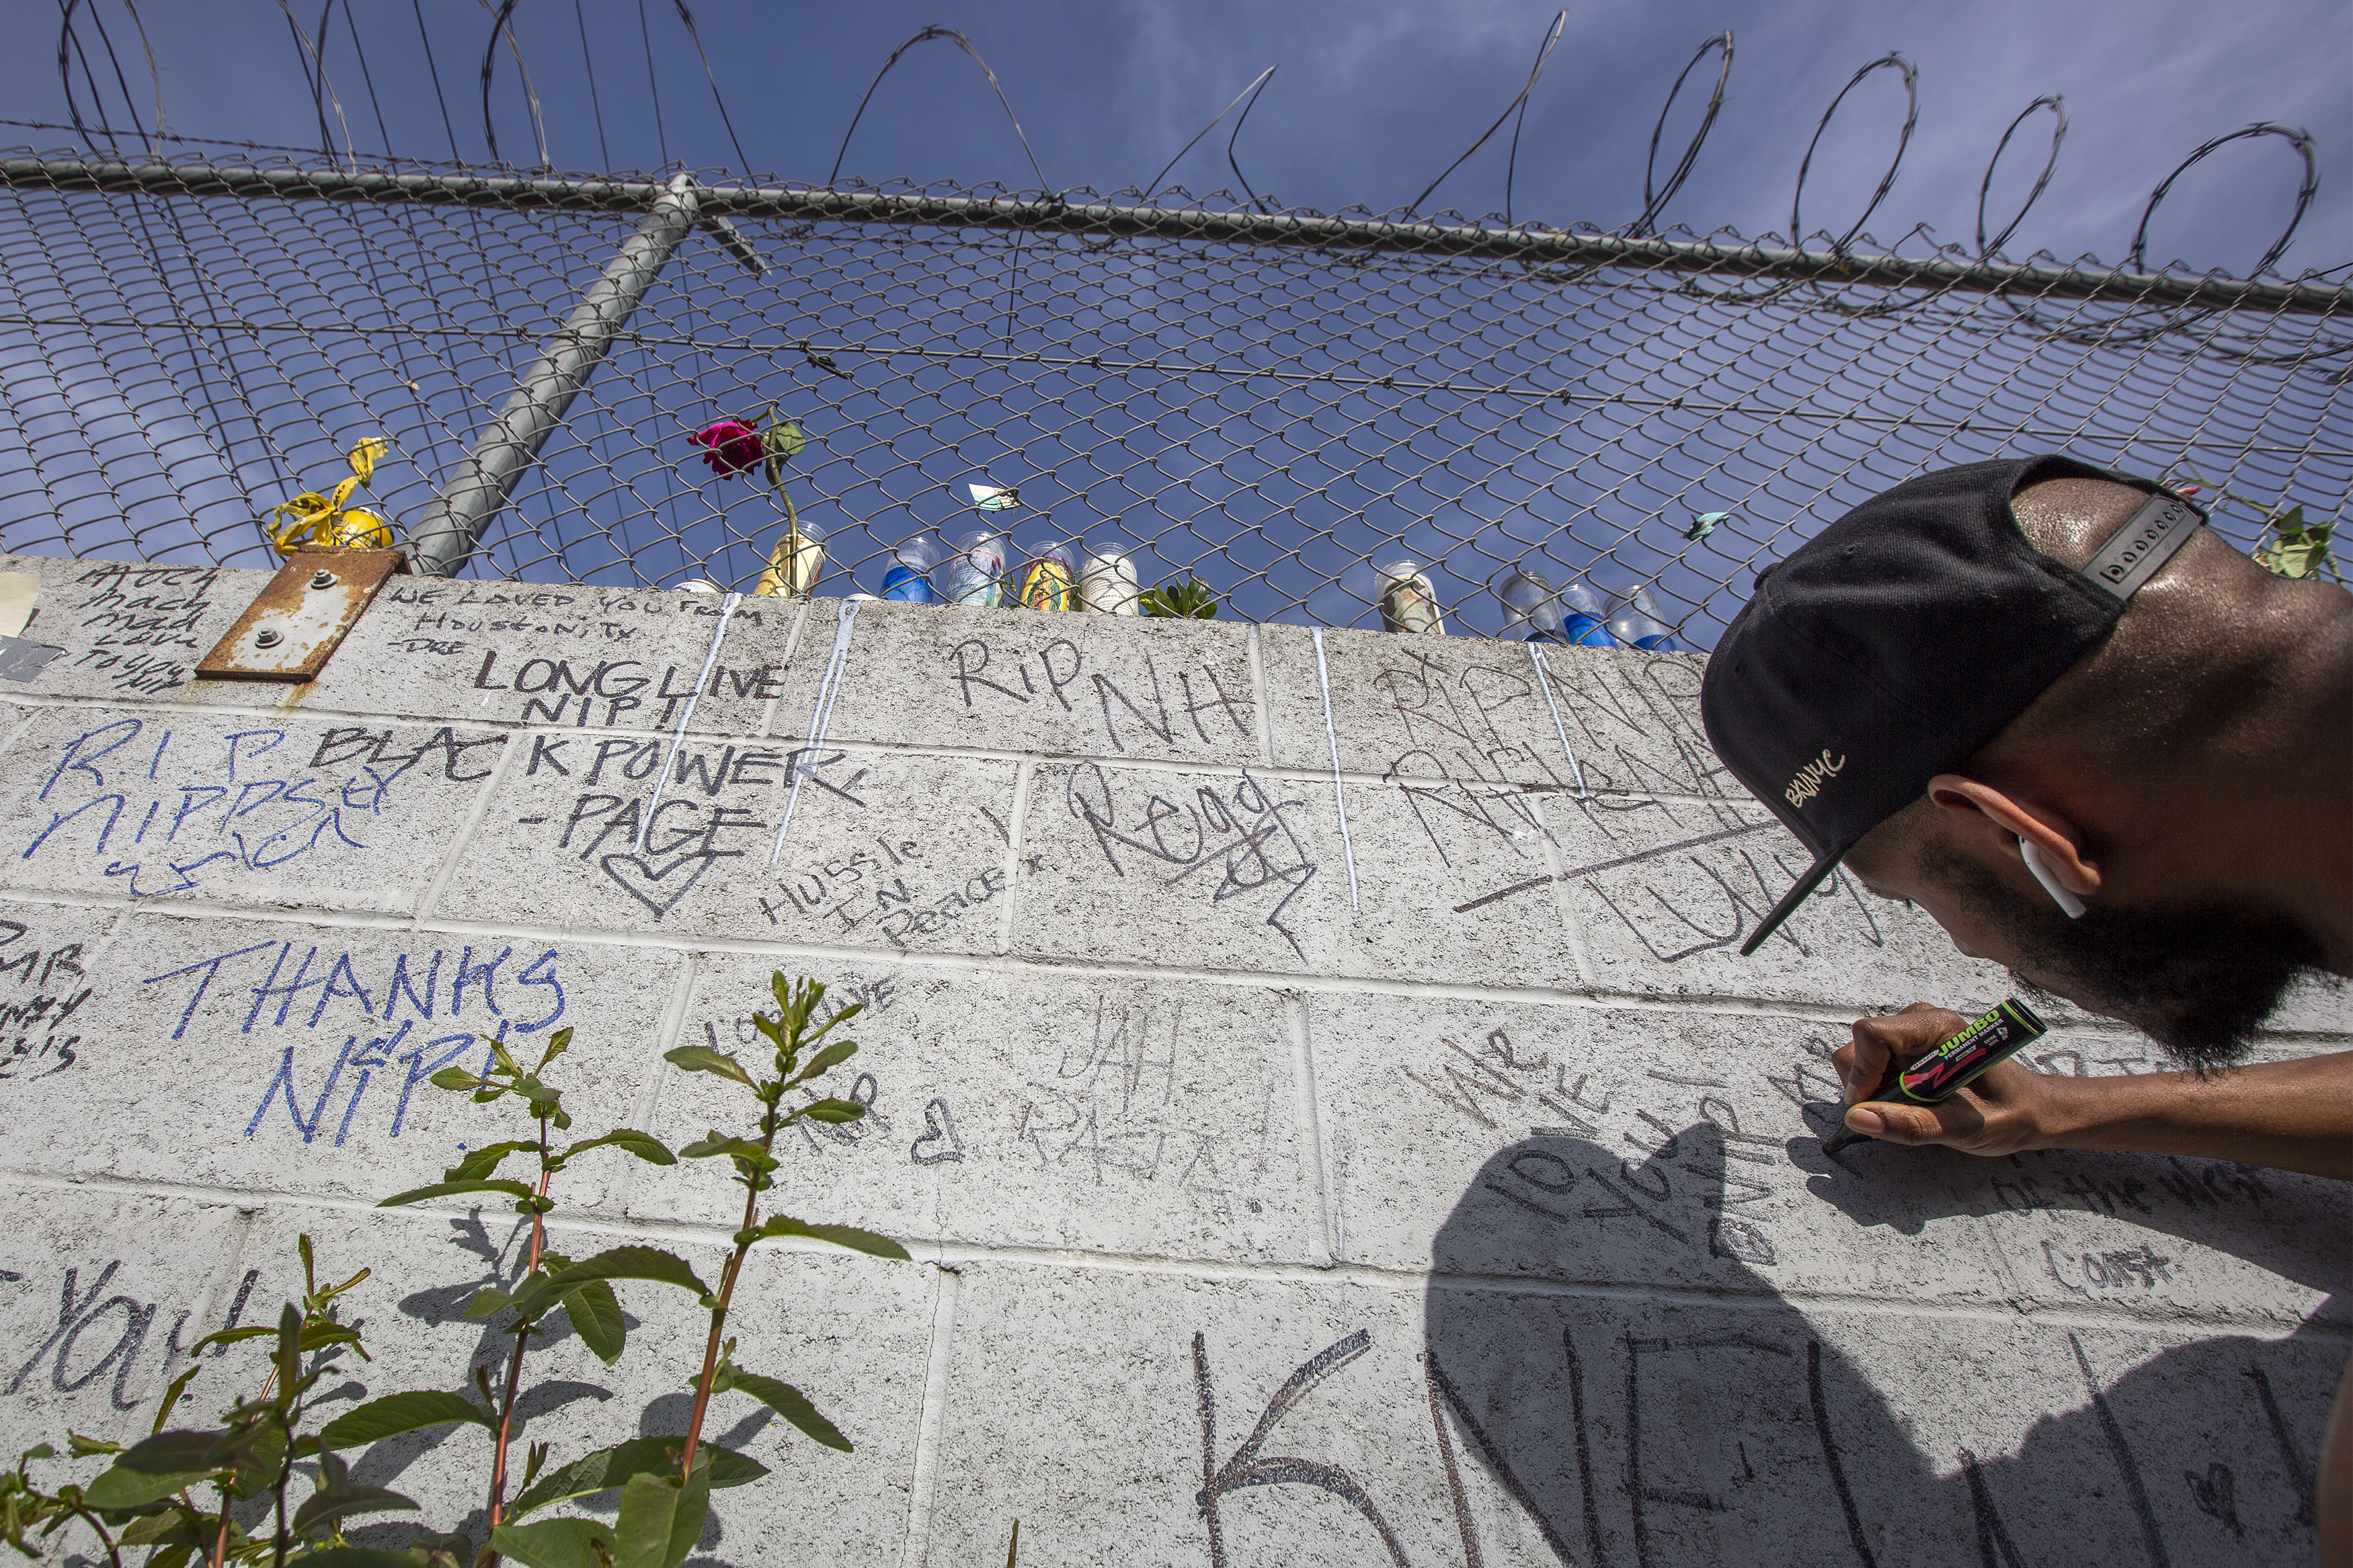 People write condolences to Nipsey Hussle on Monday in Los Angeles.